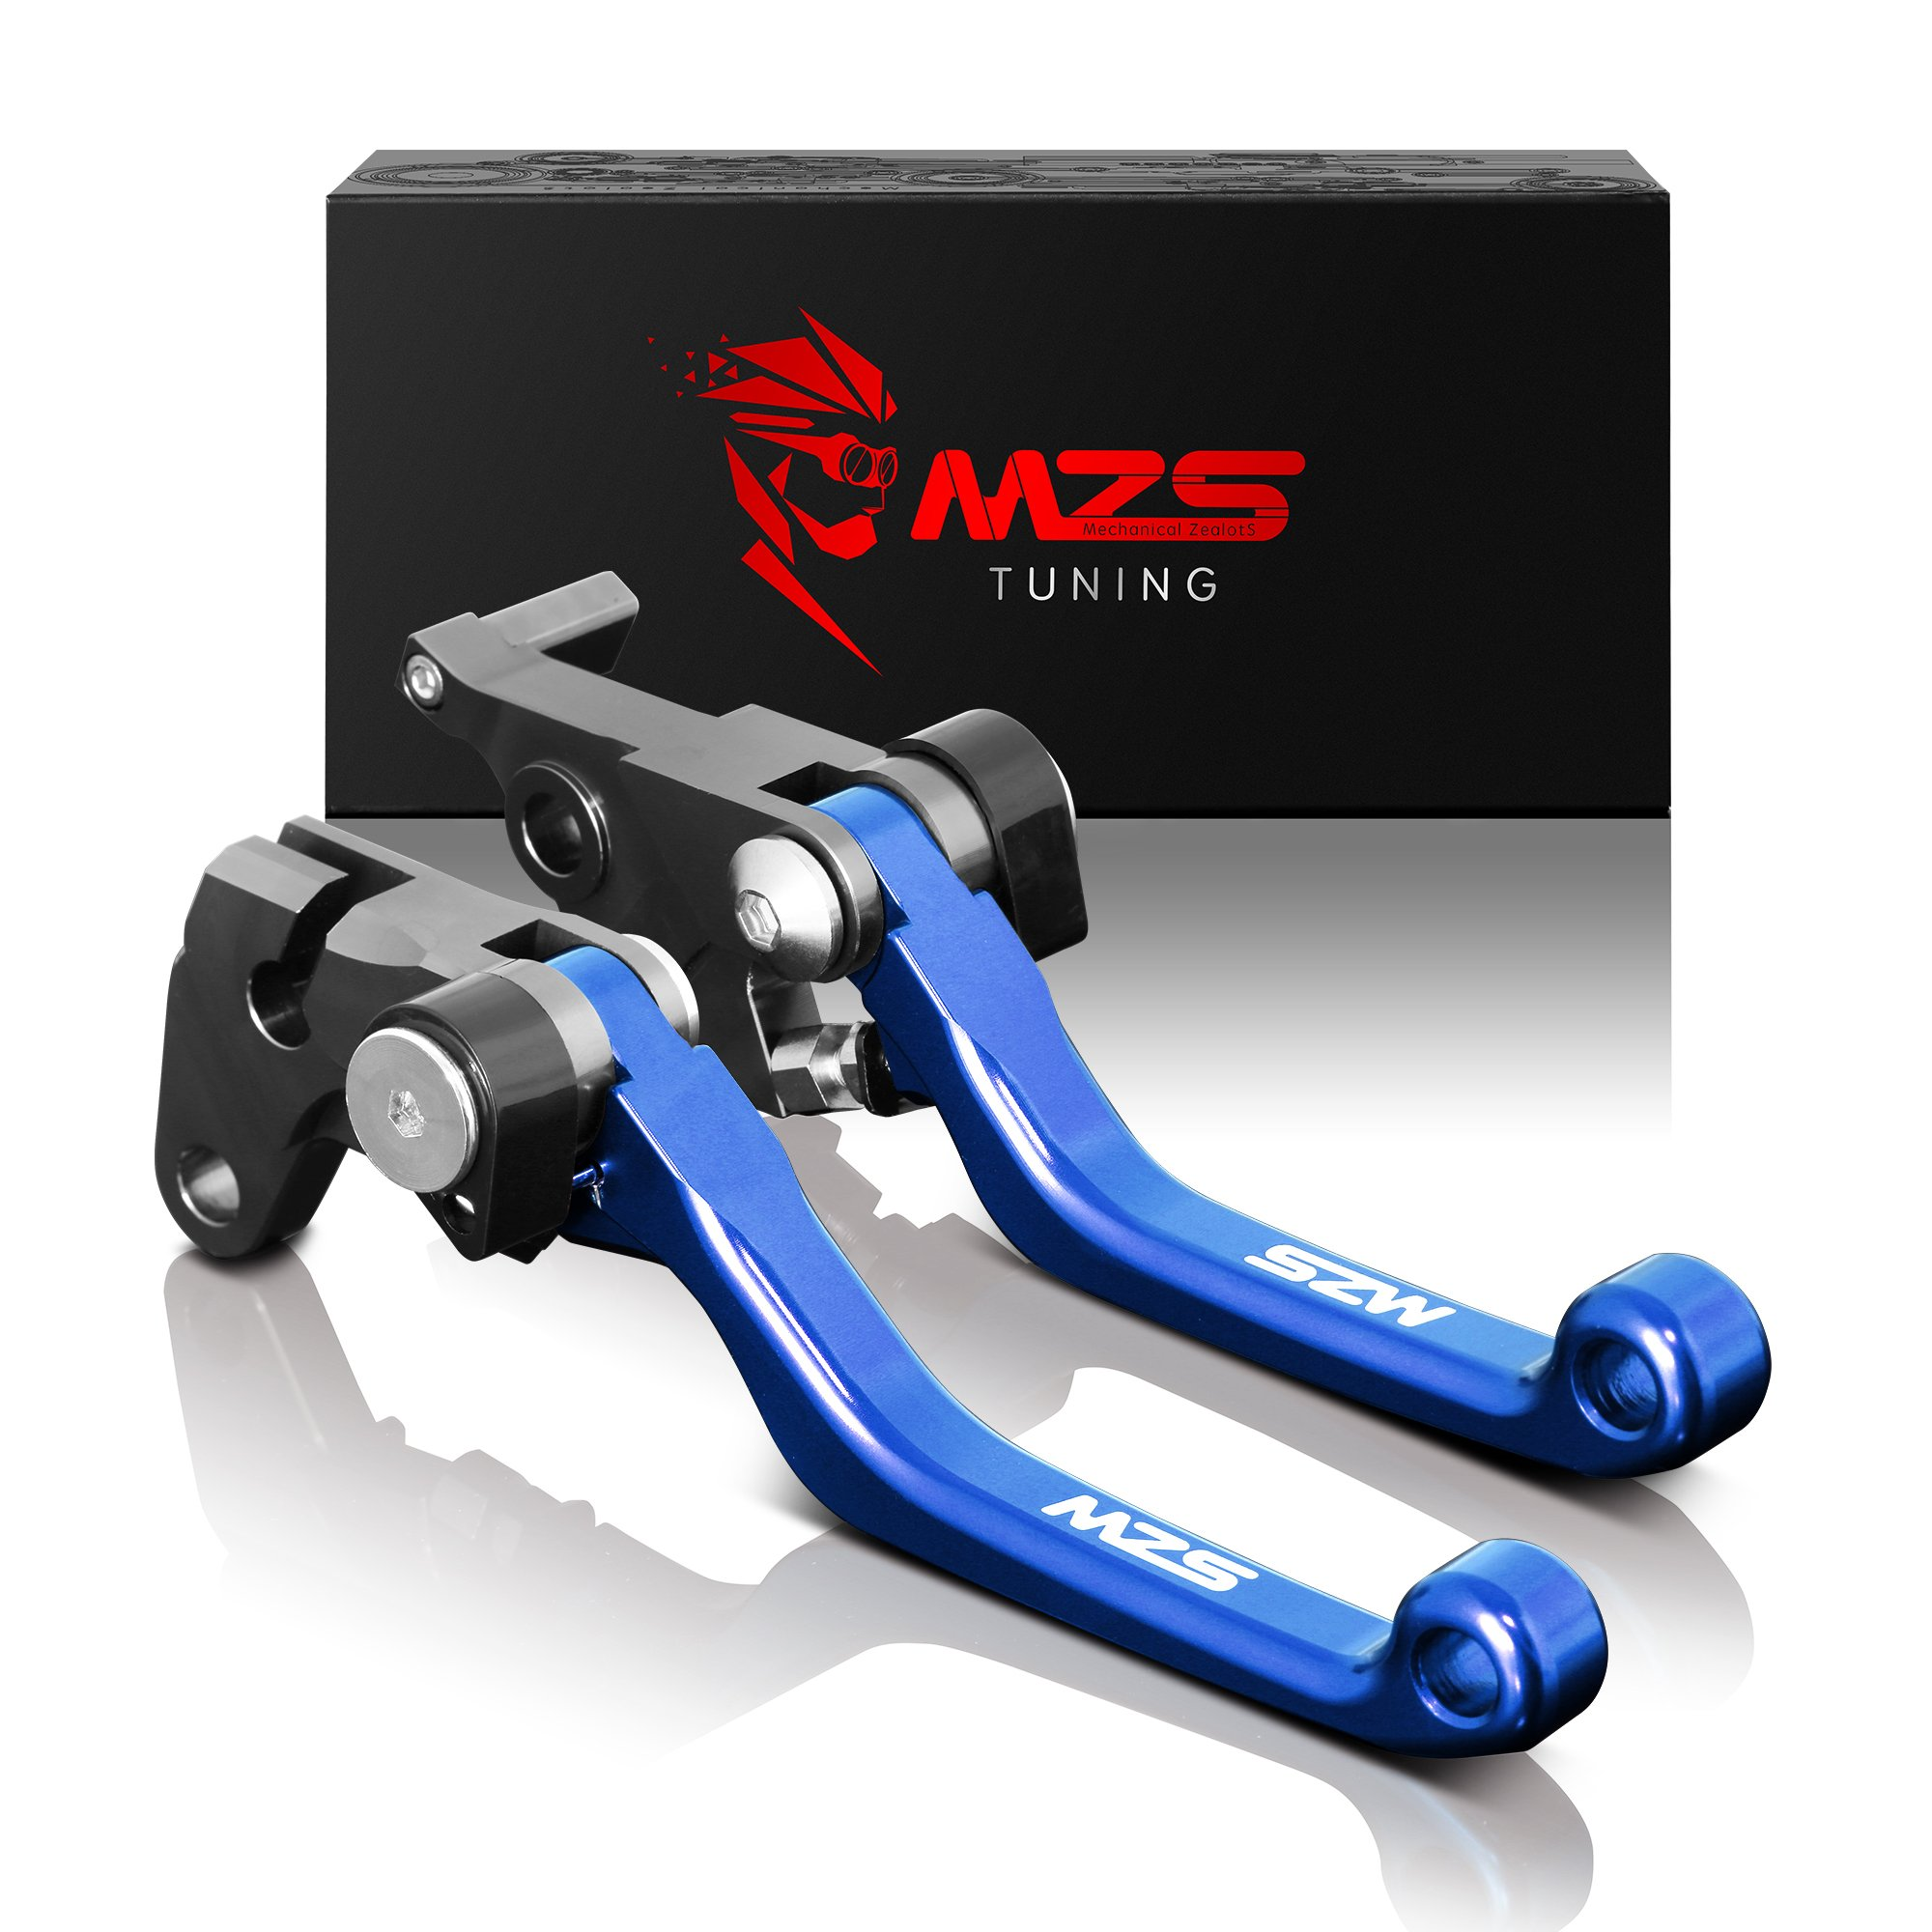 MZS Pivot Levers Brake Clutch CNC for Yamaha YZ125 YZ250 2008-2014/ YZ250F 2007-2008/ YZ426F YZ450F 2008 (Blue) by MZS